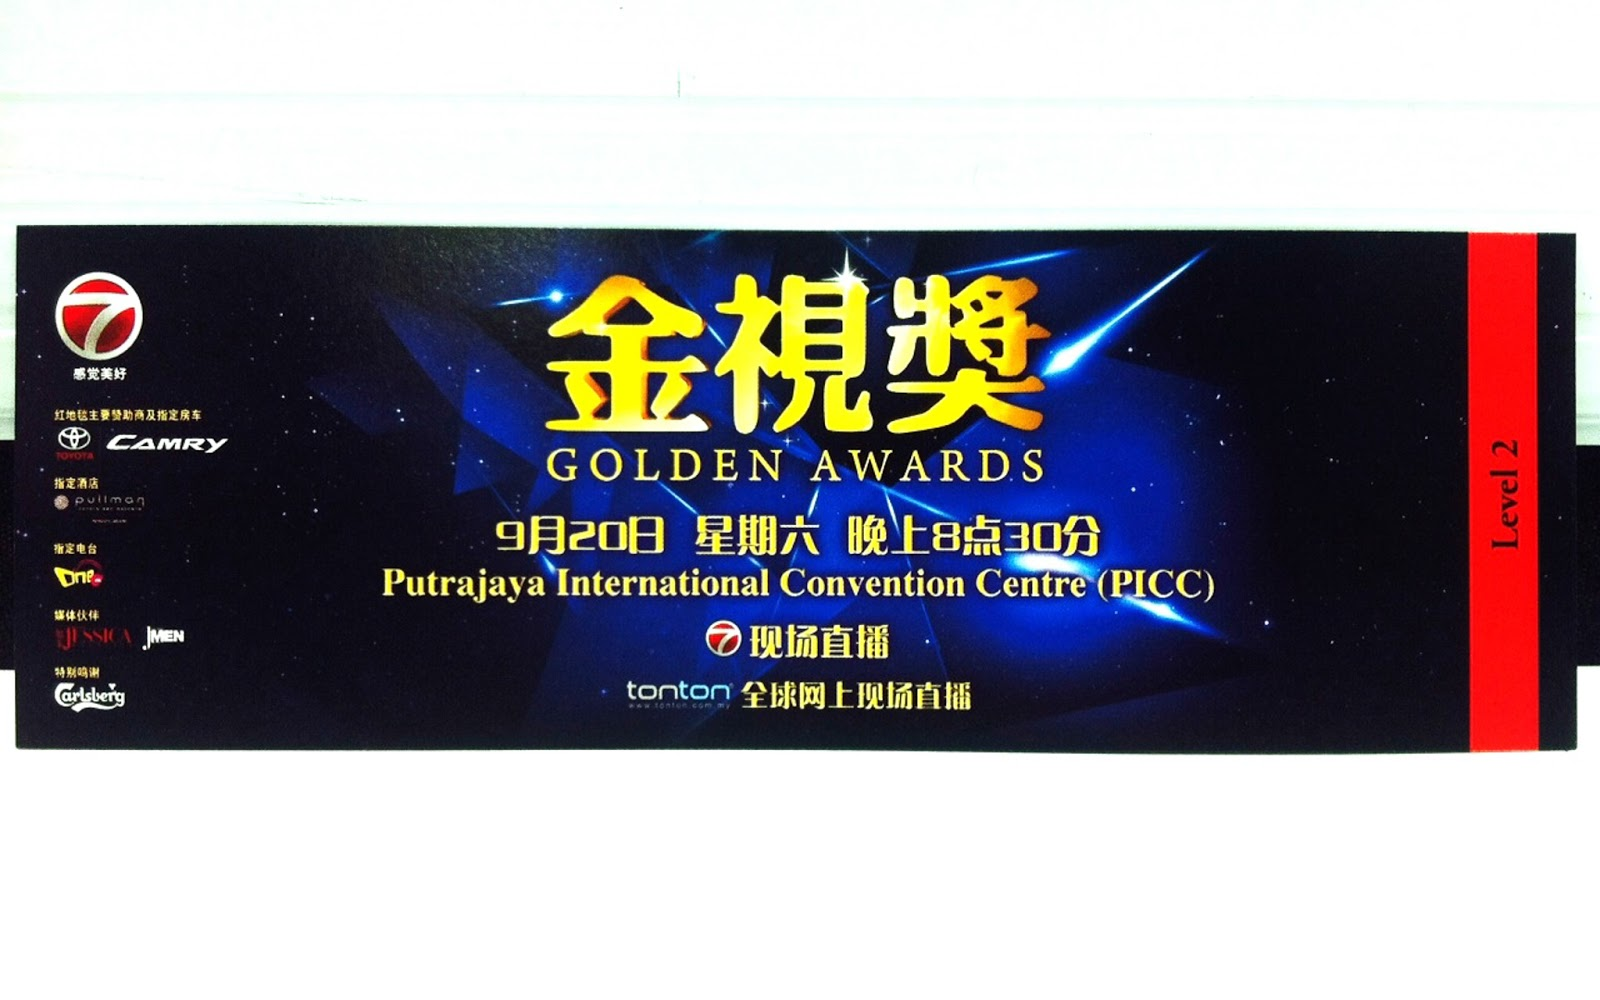 ntv7 Golden Awards 2014 @ Putrajaya International Convention Contre (PICC) 9月20日 星期六 晚上8点30分